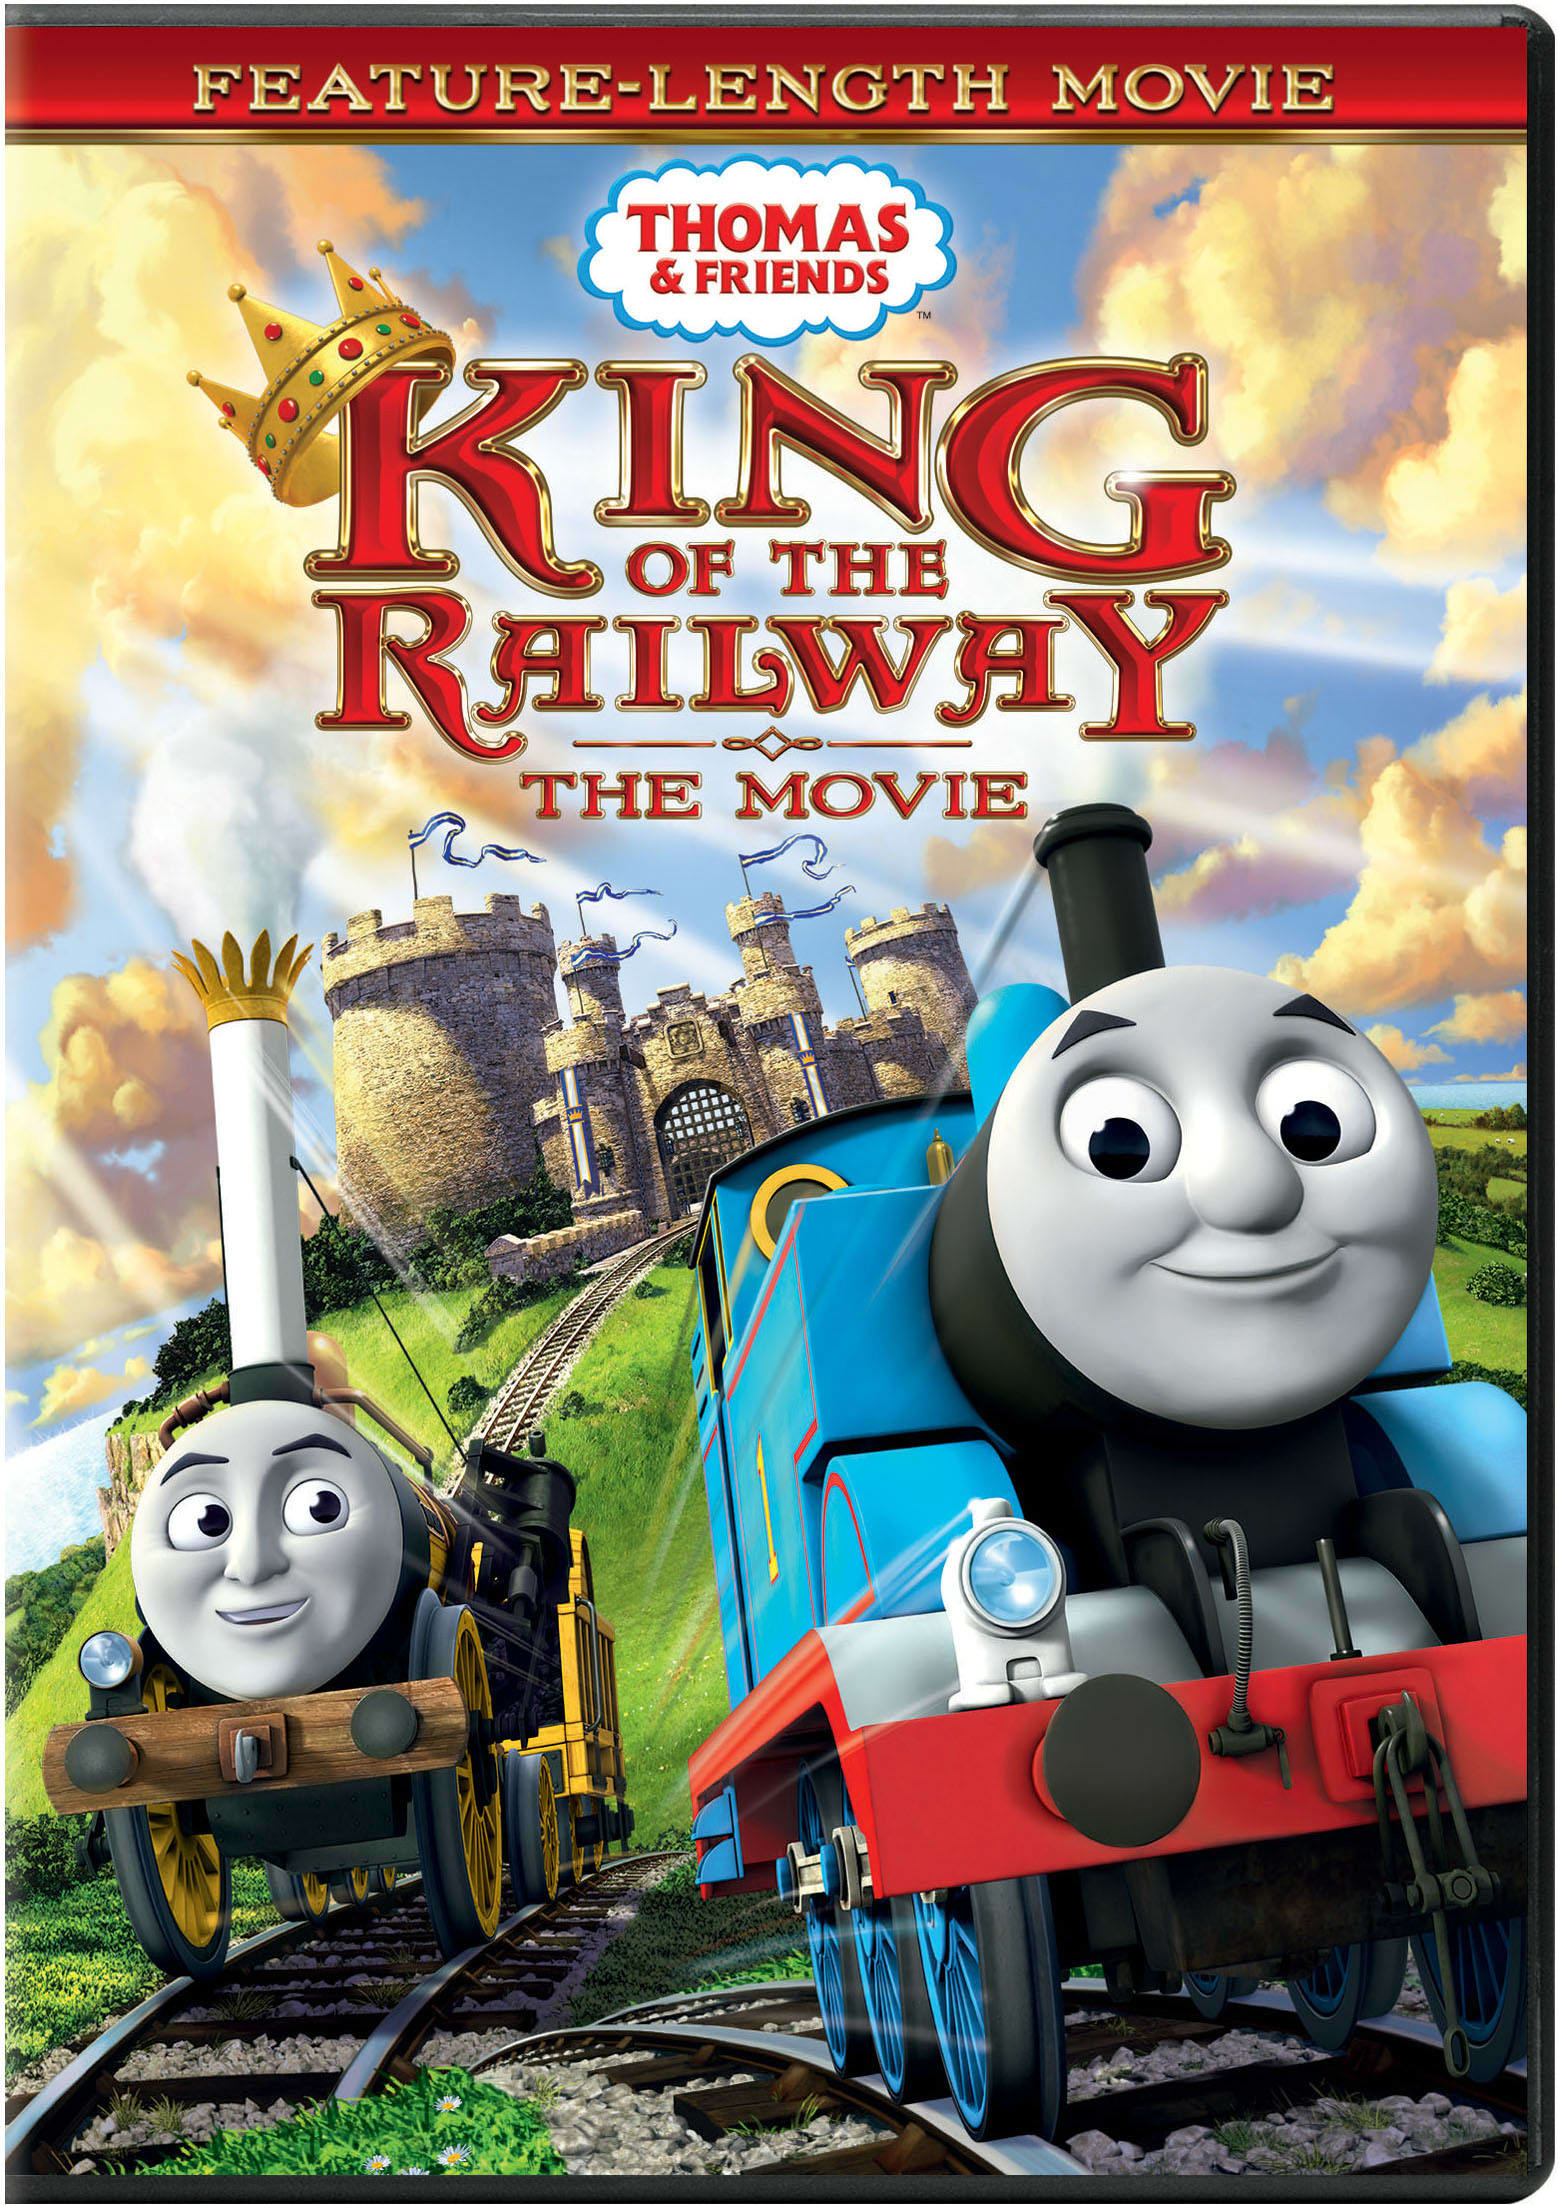 Thomas & Friends: King of the Railway - The Movie [DVD]